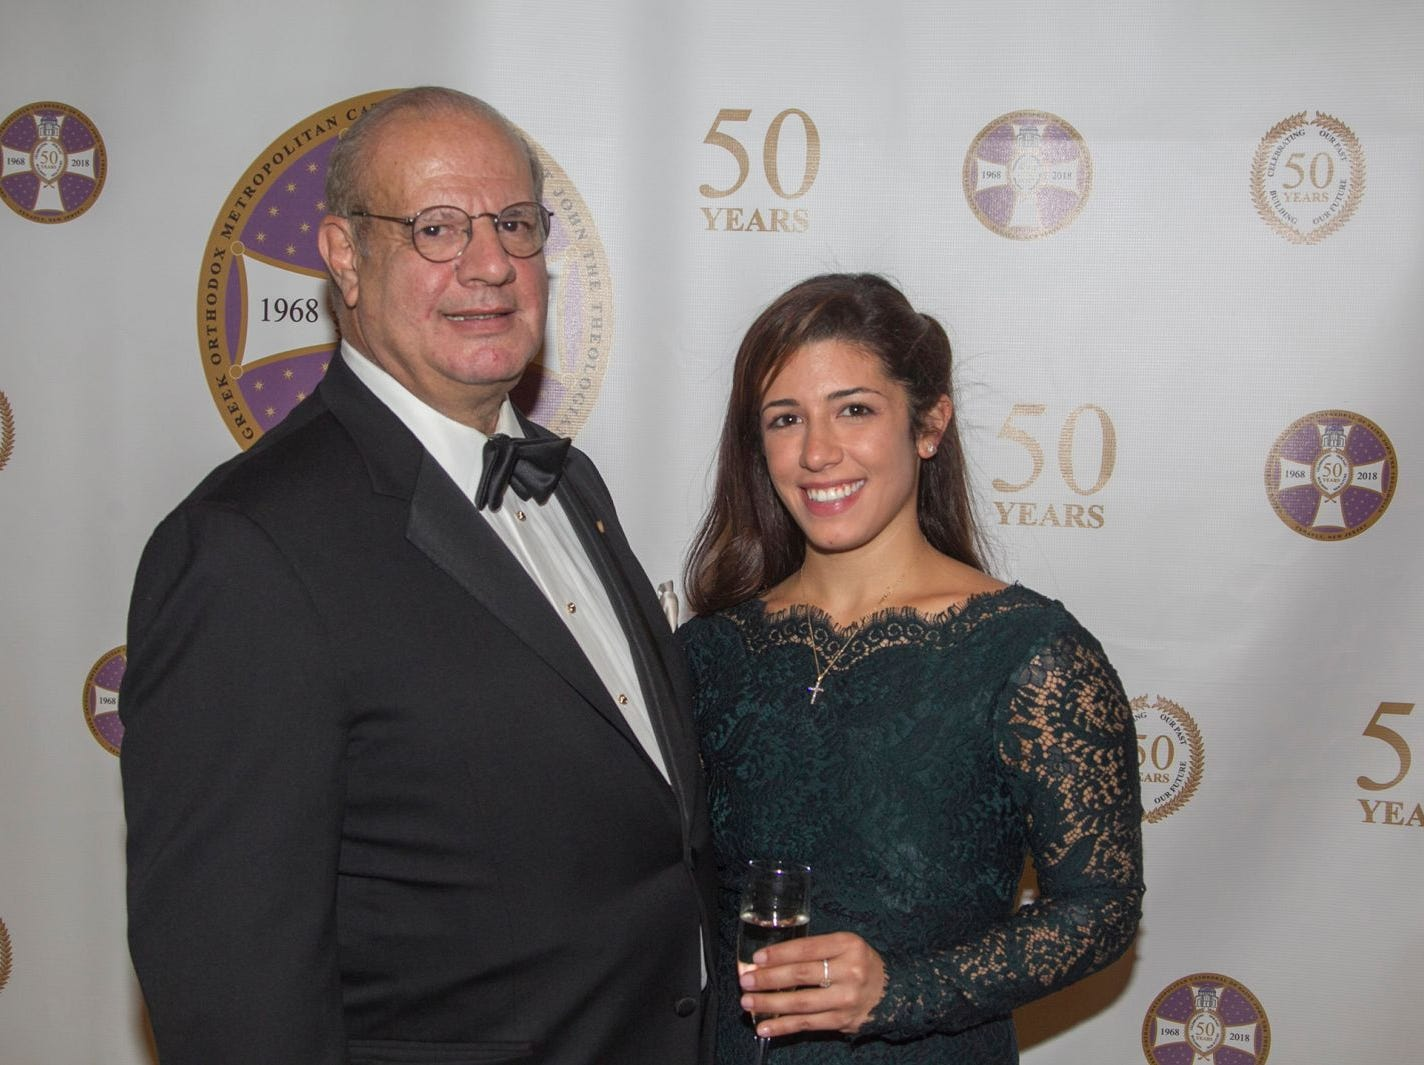 Arthur and Alexis Chagaris. Saint John the Theologian 50th Anniversary gala Dinner at The Venetian in Garfield. 10/04/2018